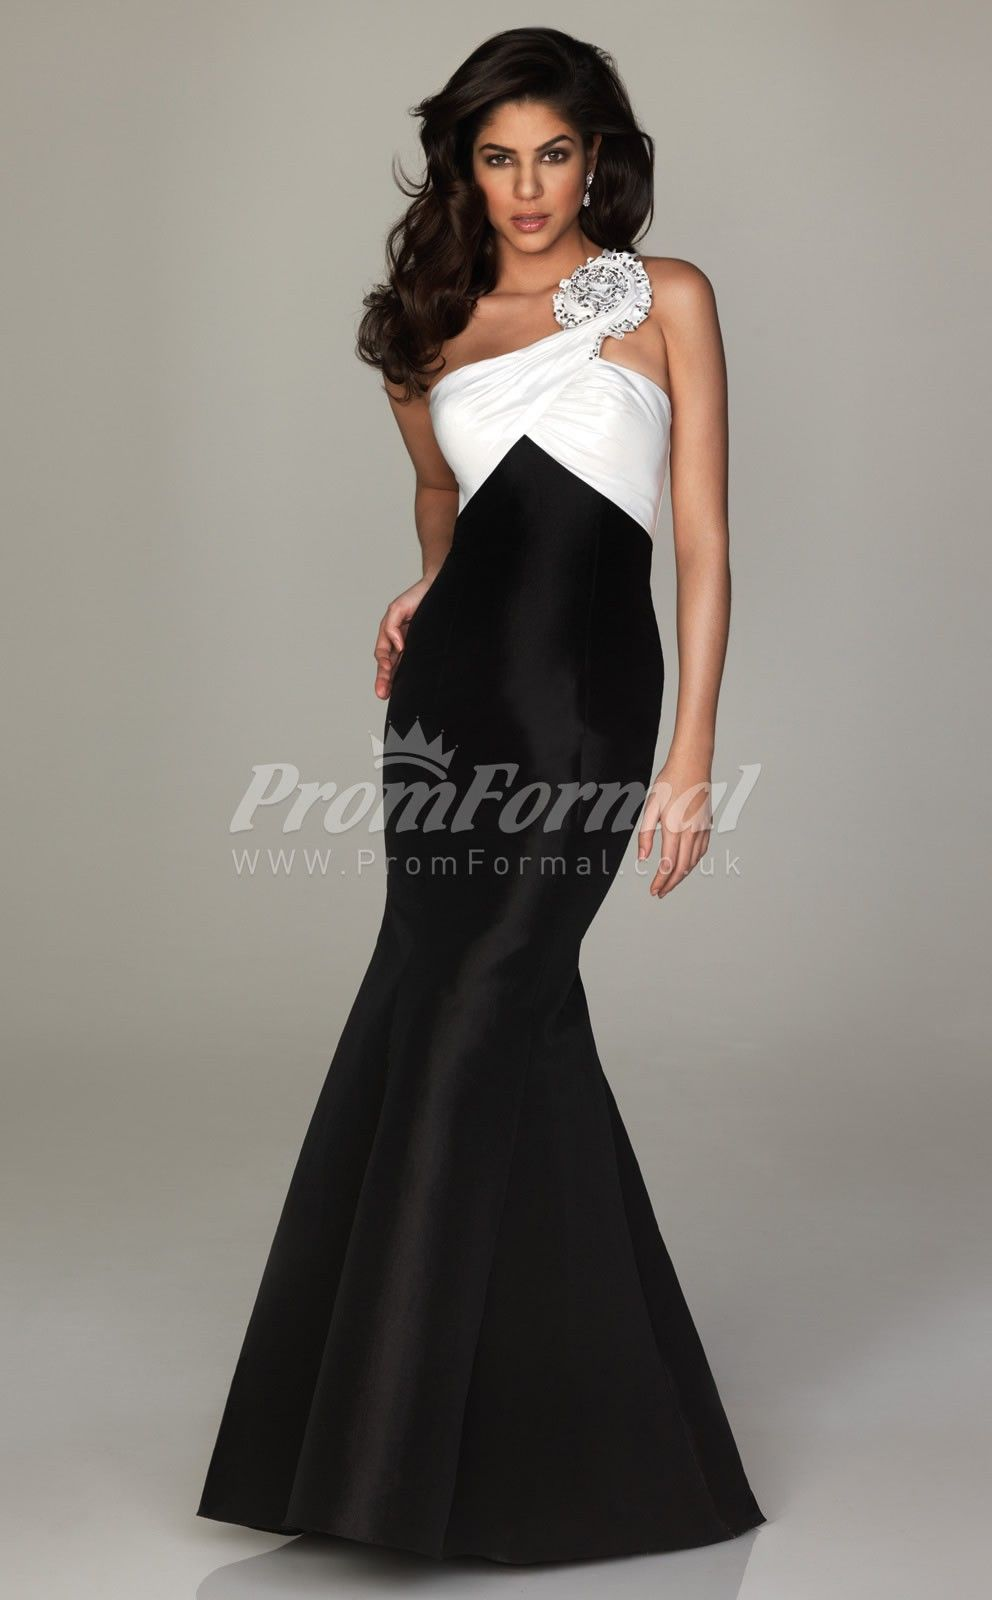 Black and white long prom dressesprom dresses wedding ideas